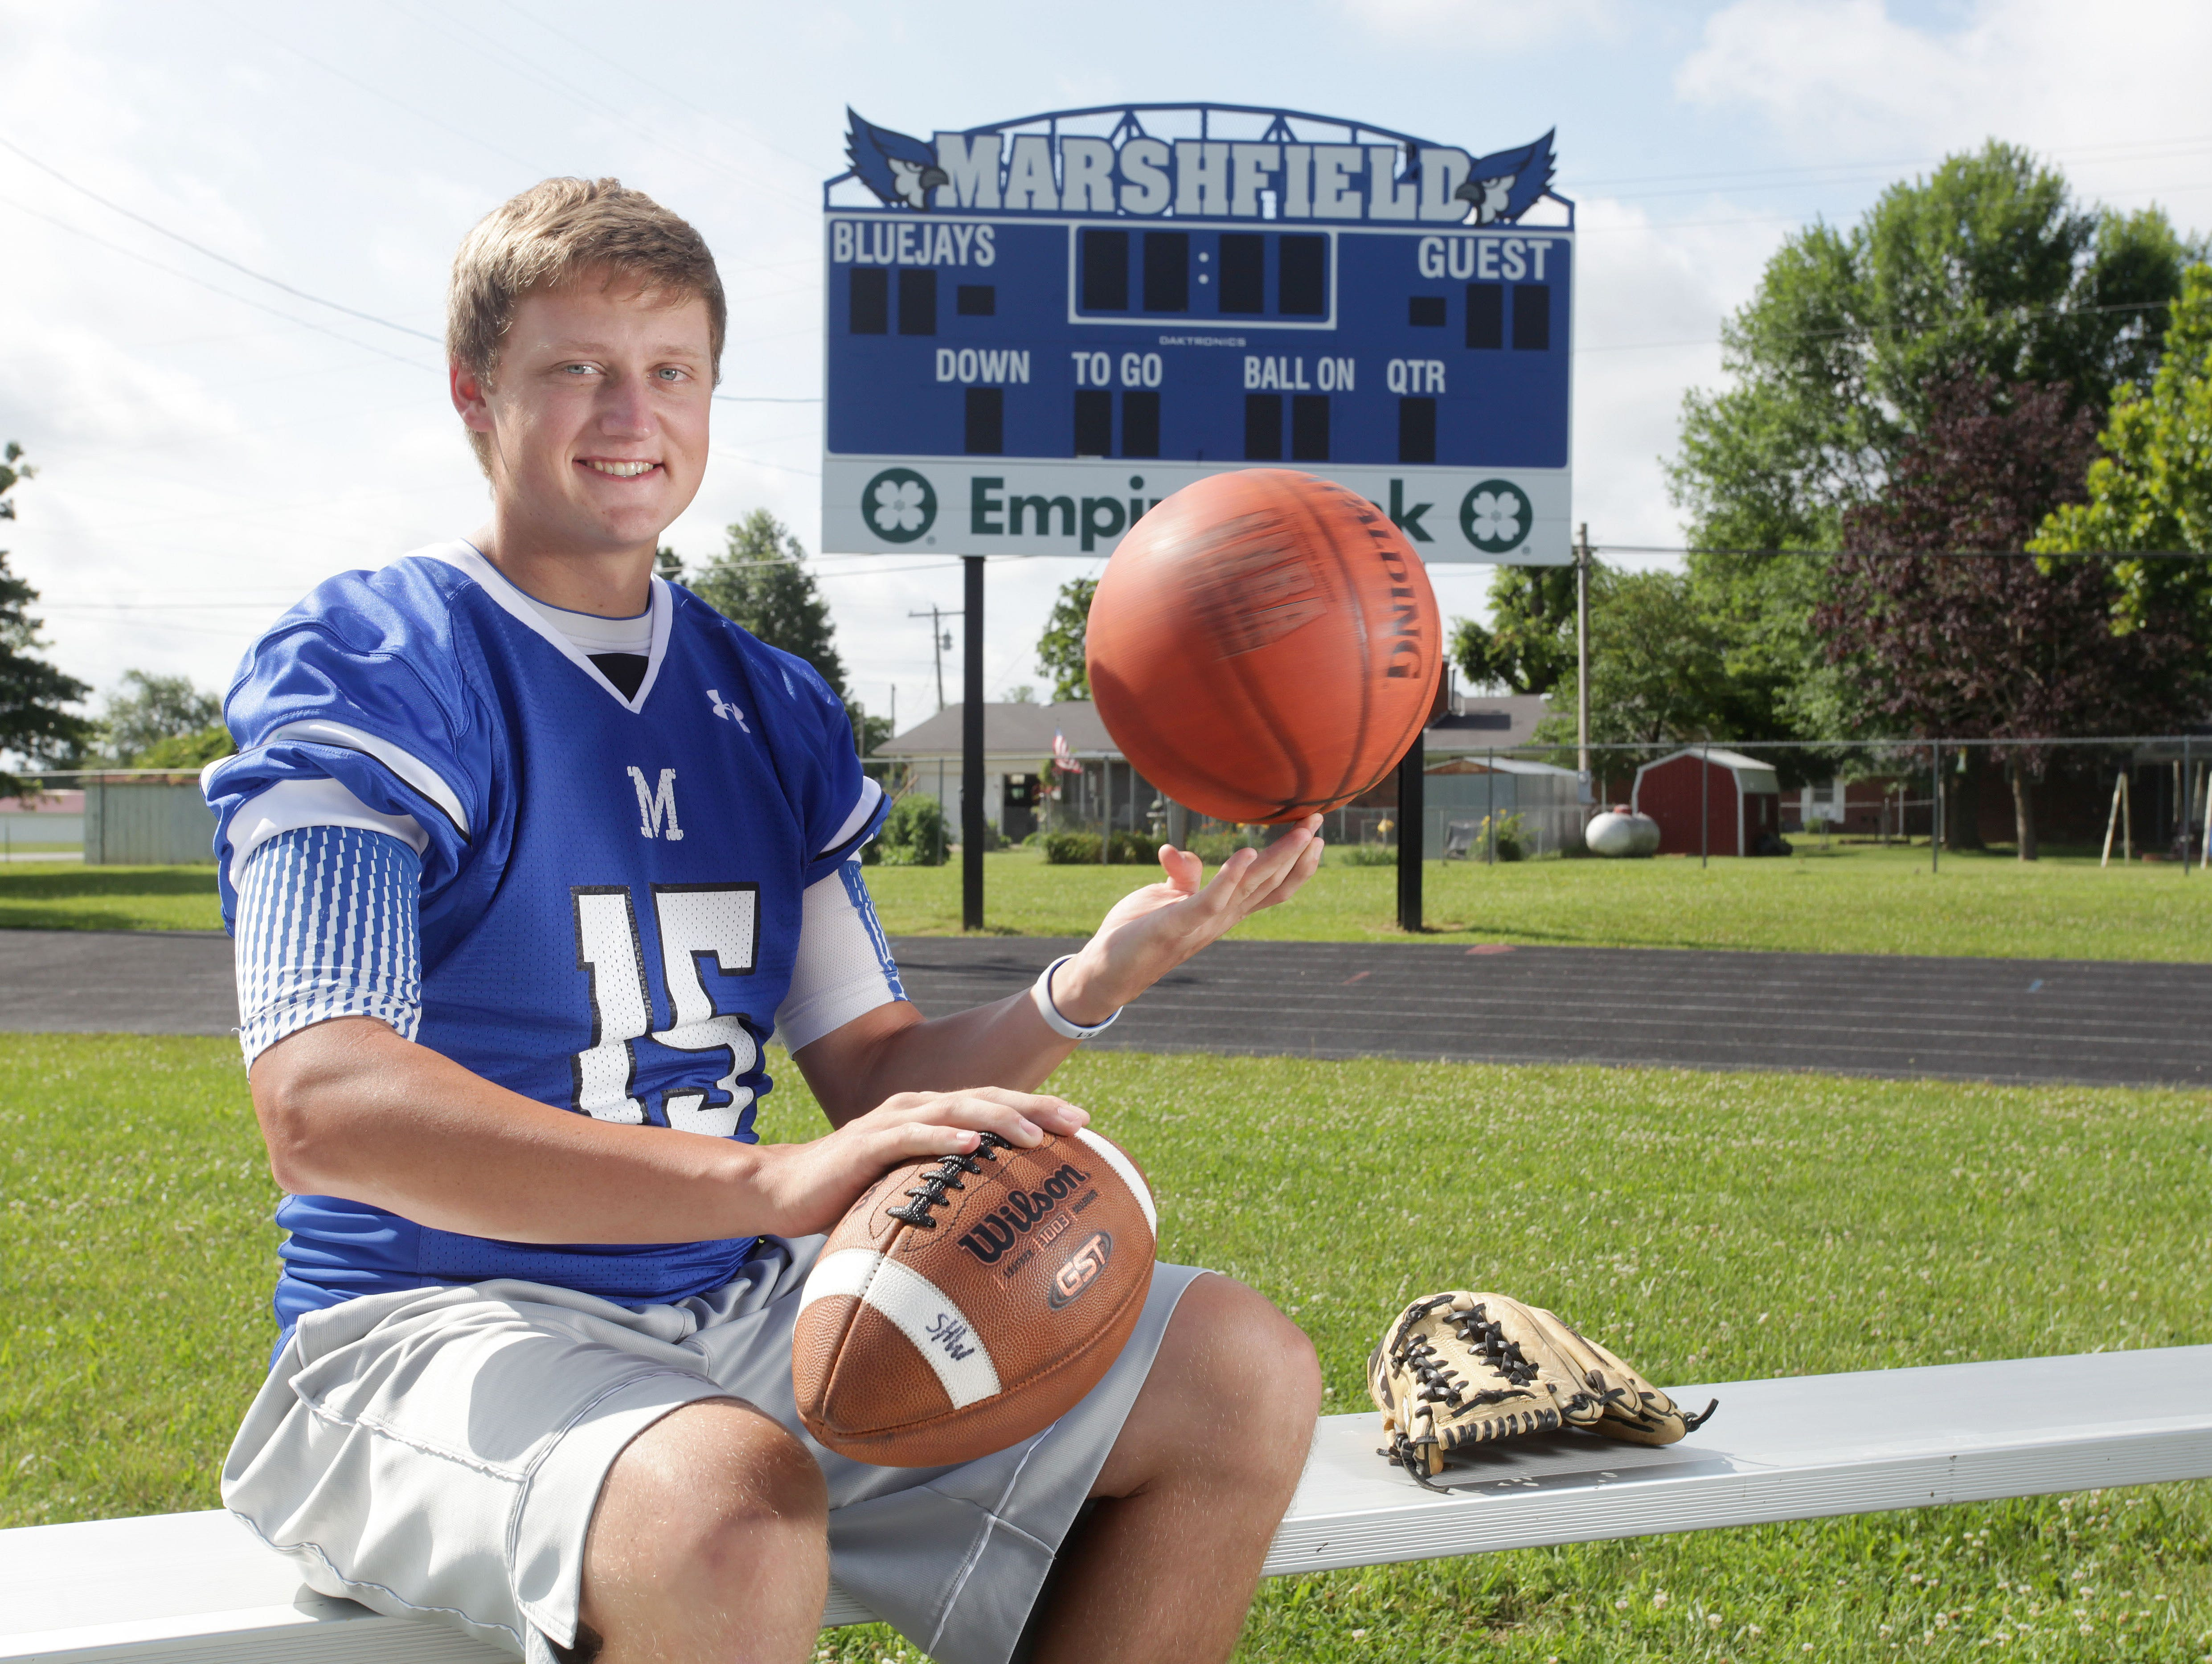 Marshfield's Blayne Armstrong starred in four sports throughout his high school career, earning News-Leader Male Athlete of the Year honors as a senior.